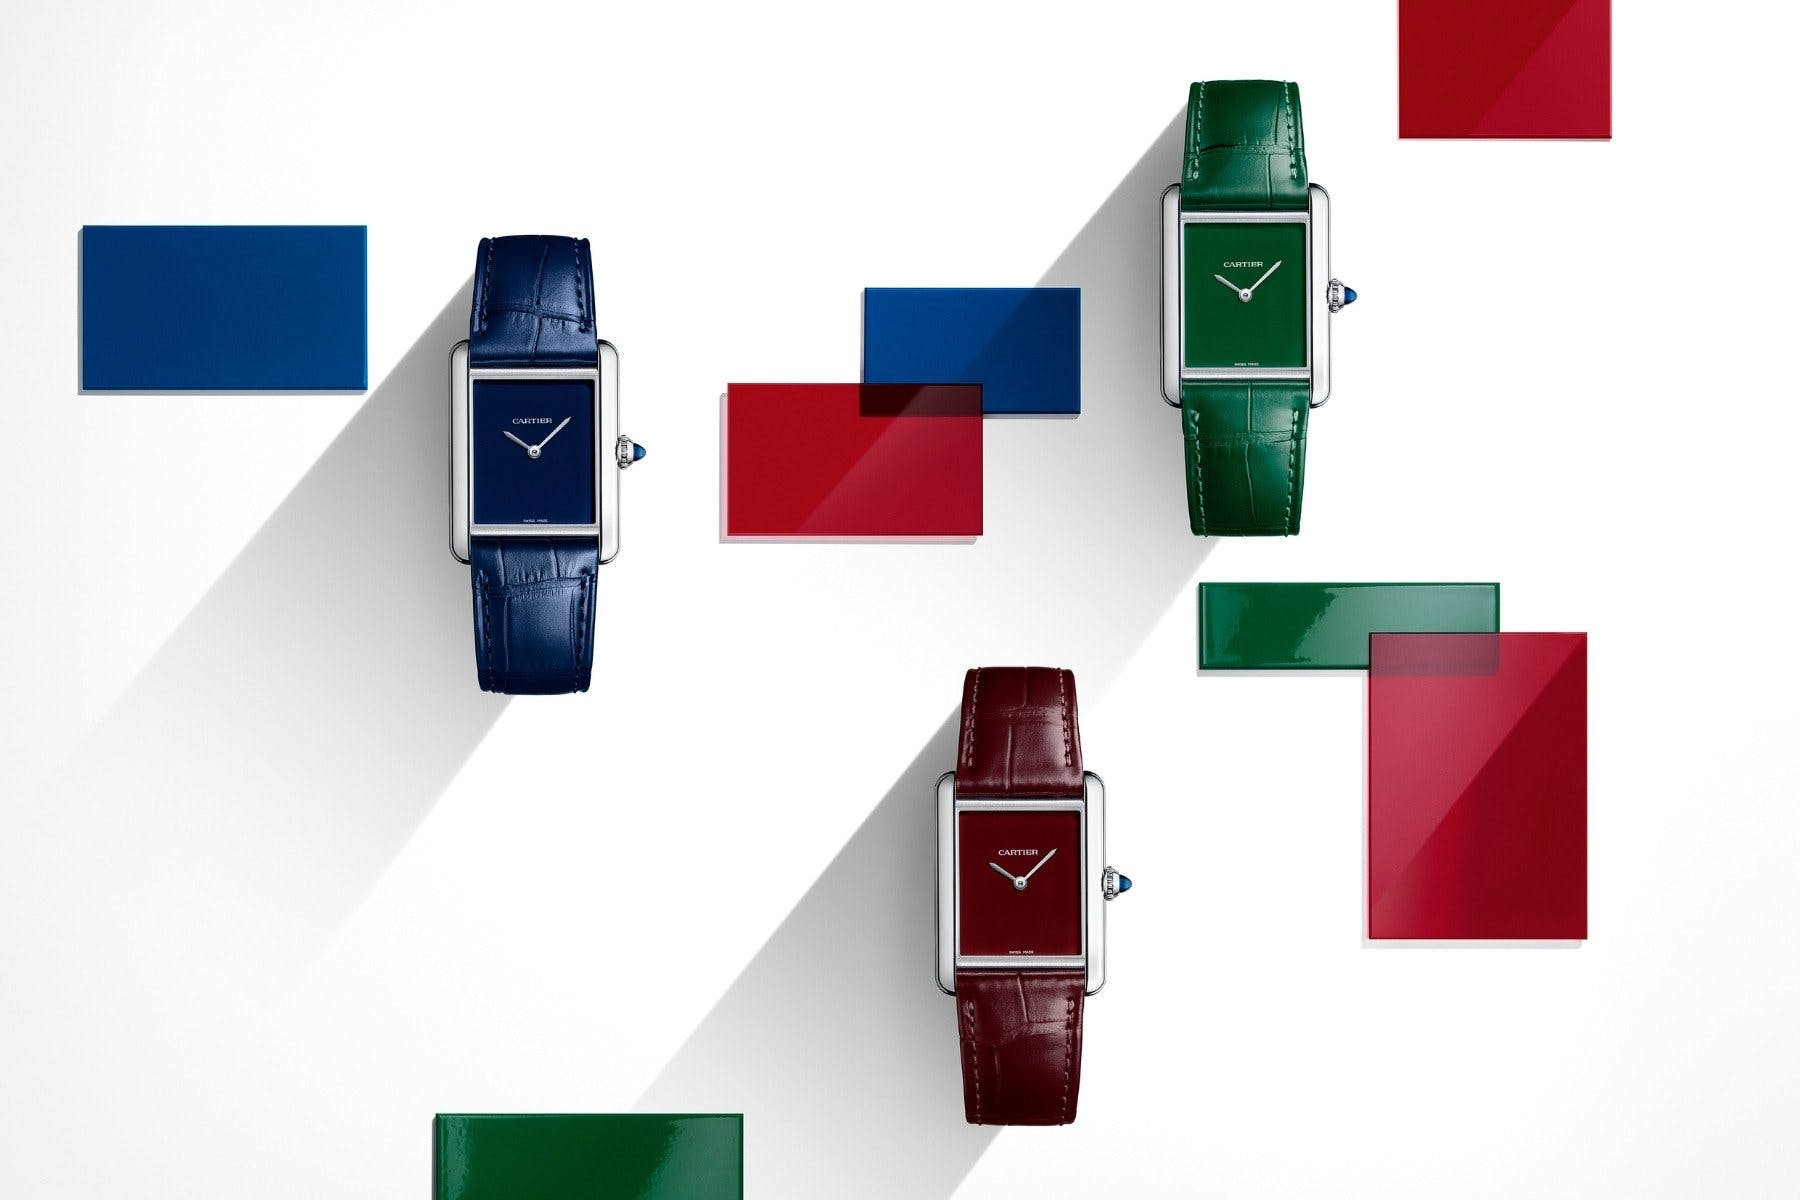 The new Cartier Must collection brings back an iconic watch movement.